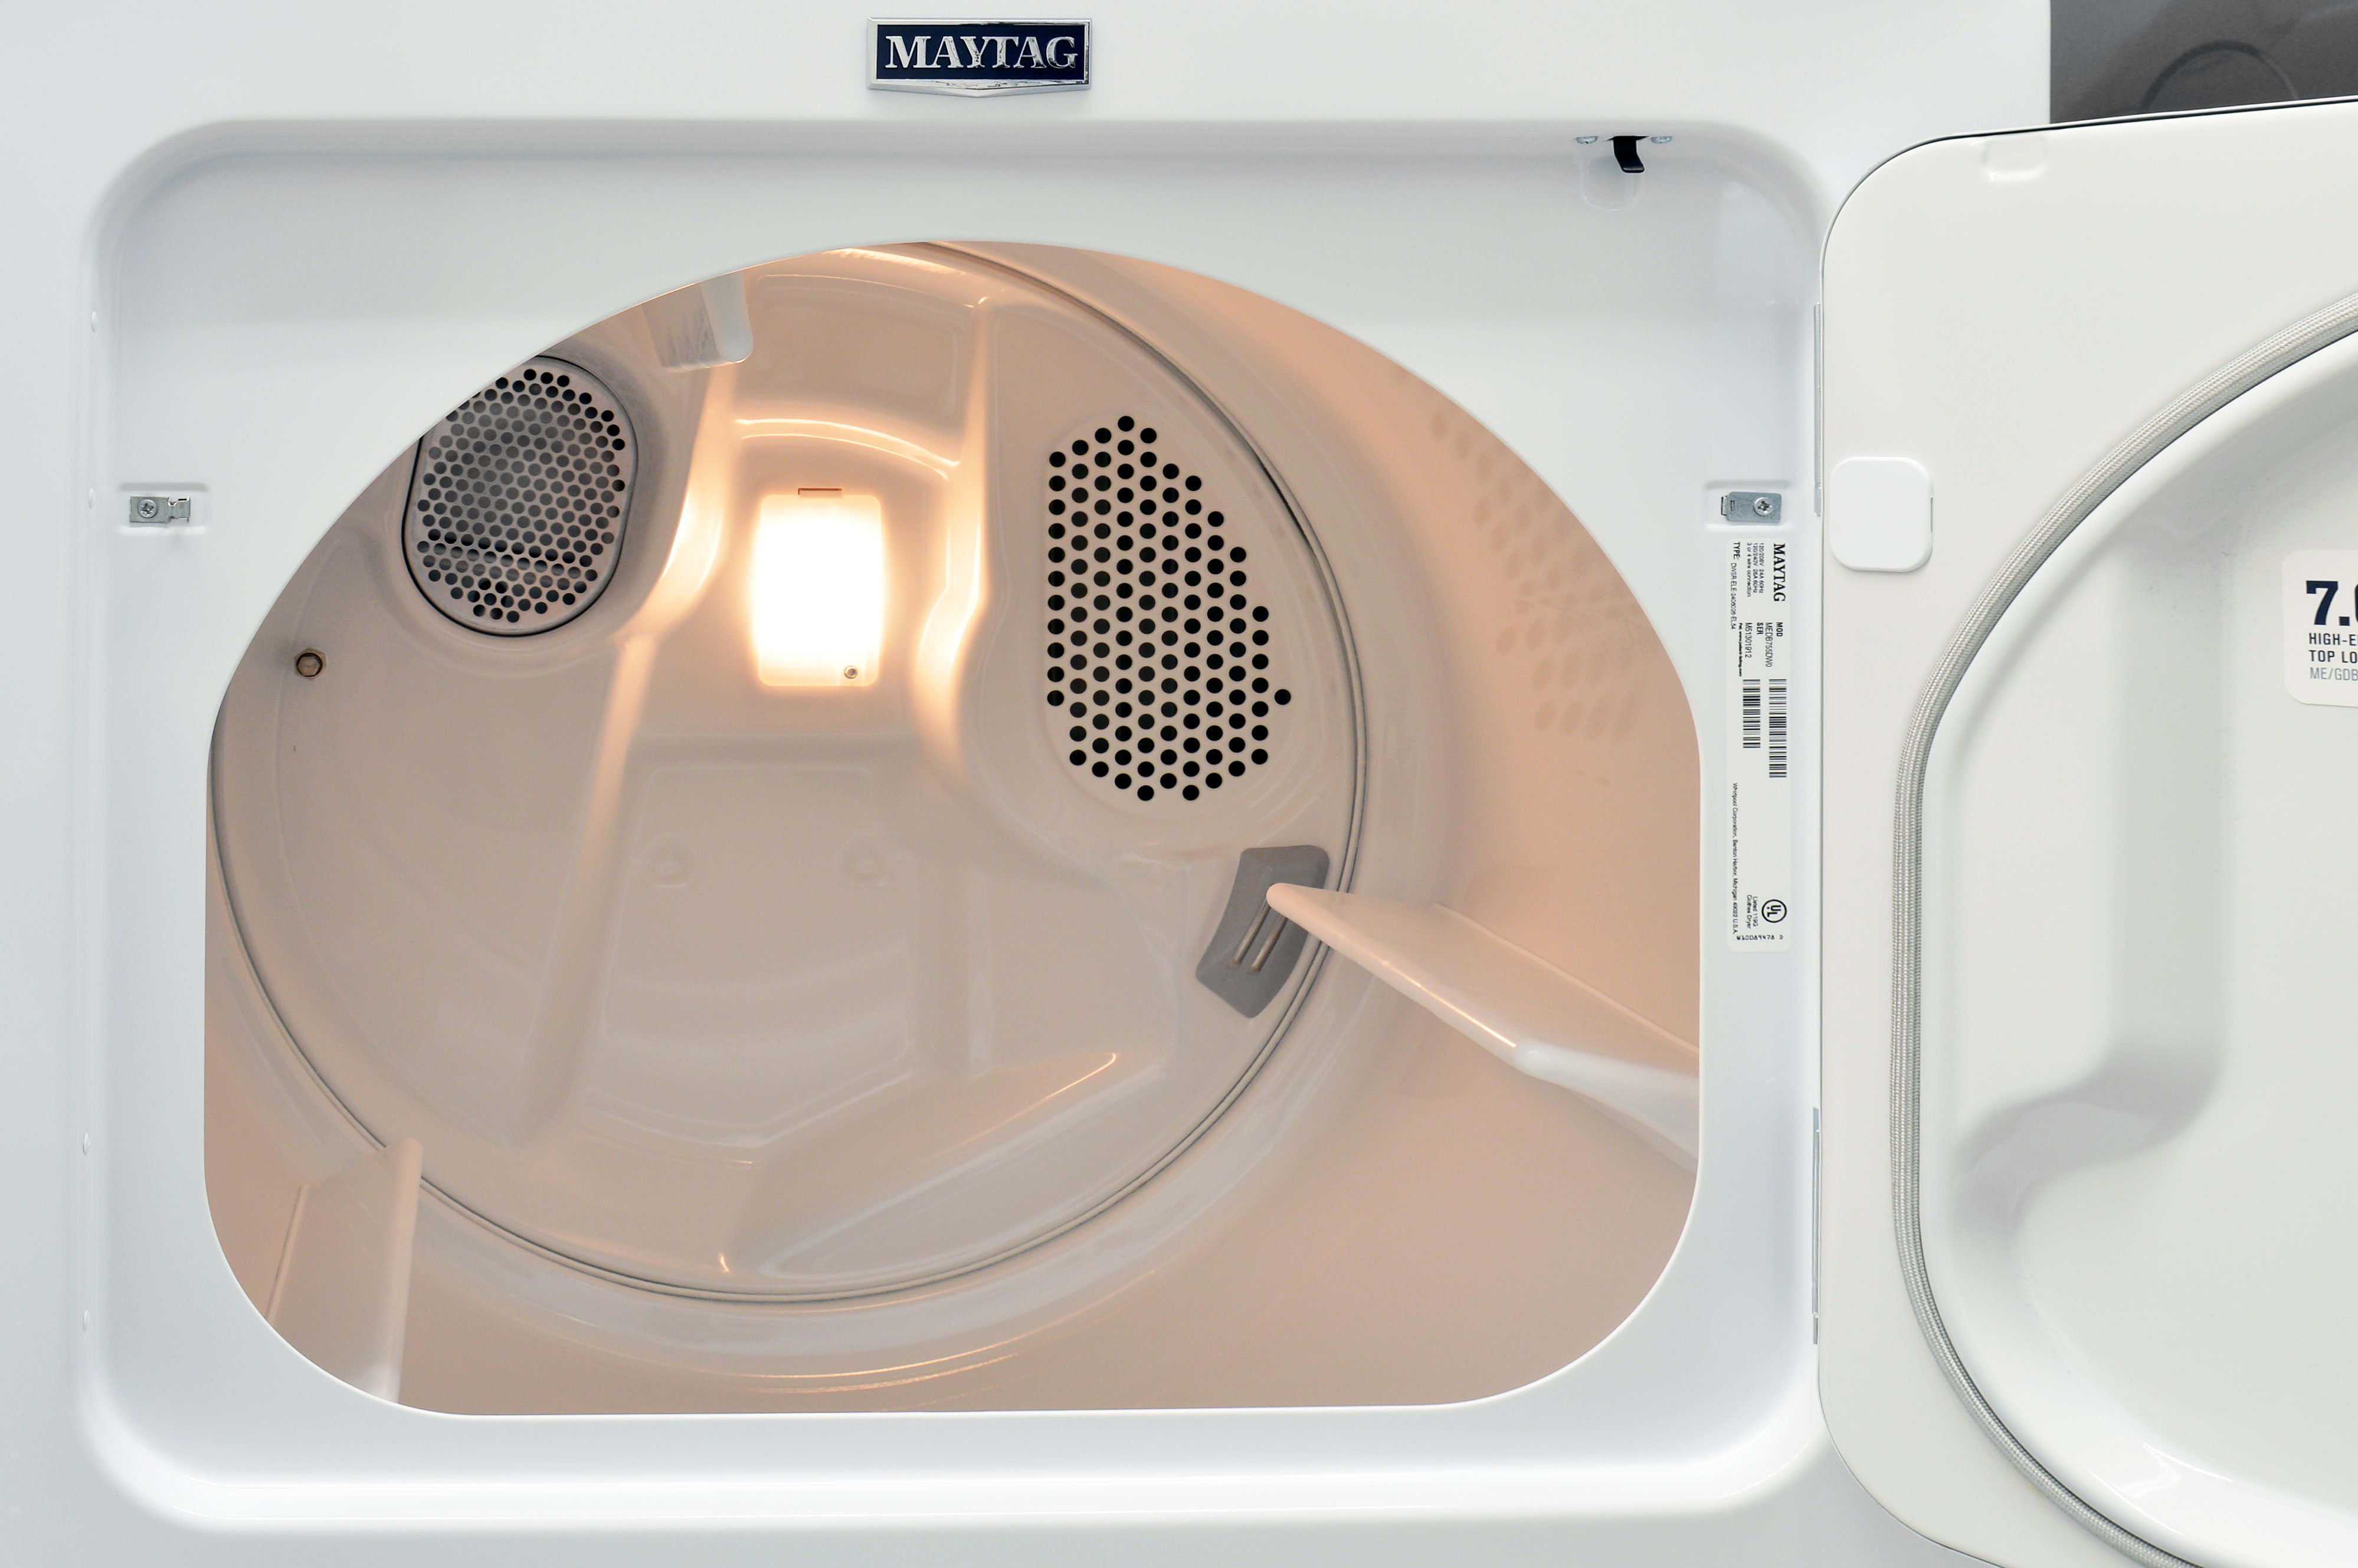 The Maytag Bravos MEDB755DW's 7-cu.-ft. drum was more than capable of handling our large test load.s